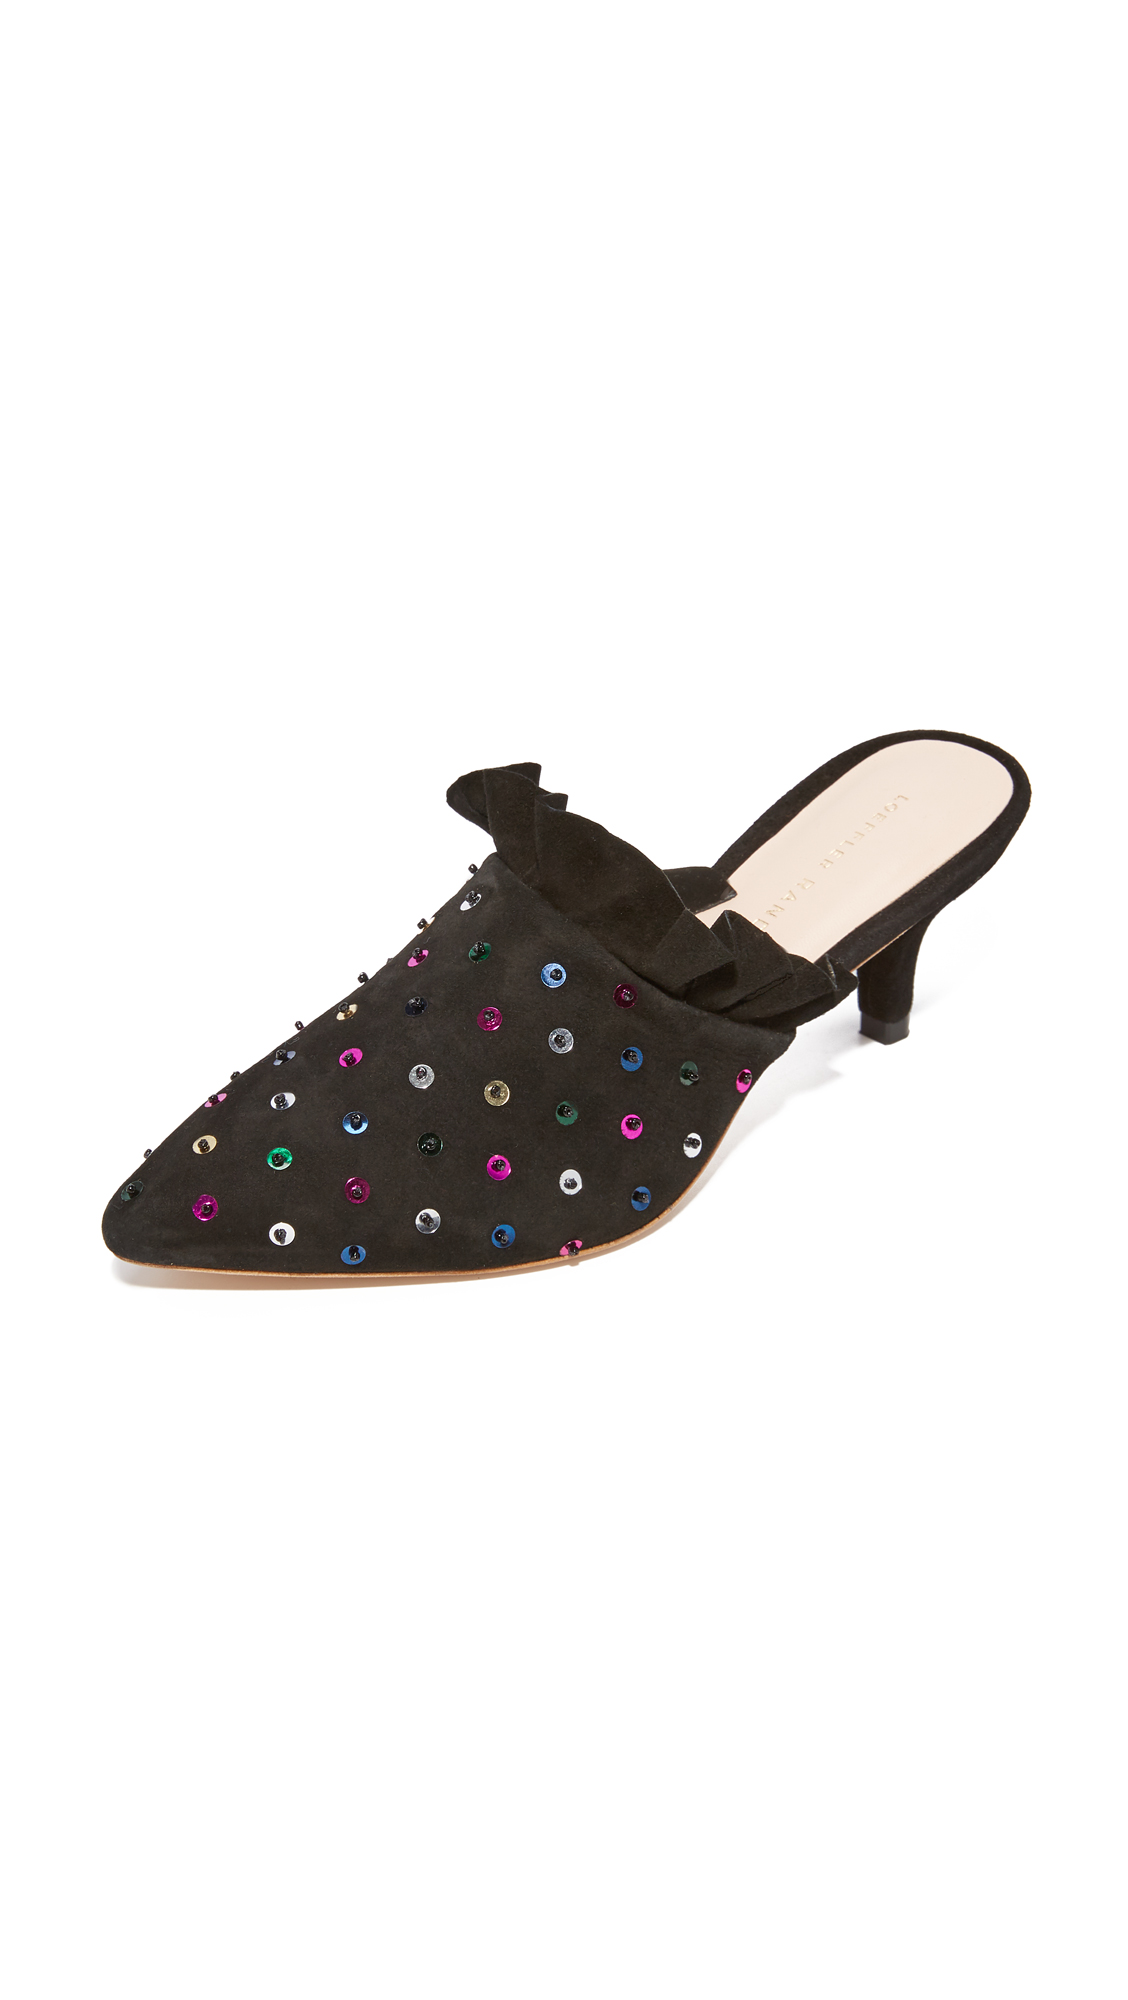 Loeffler Randall Berkley Sequin Pumps - Black/Multi